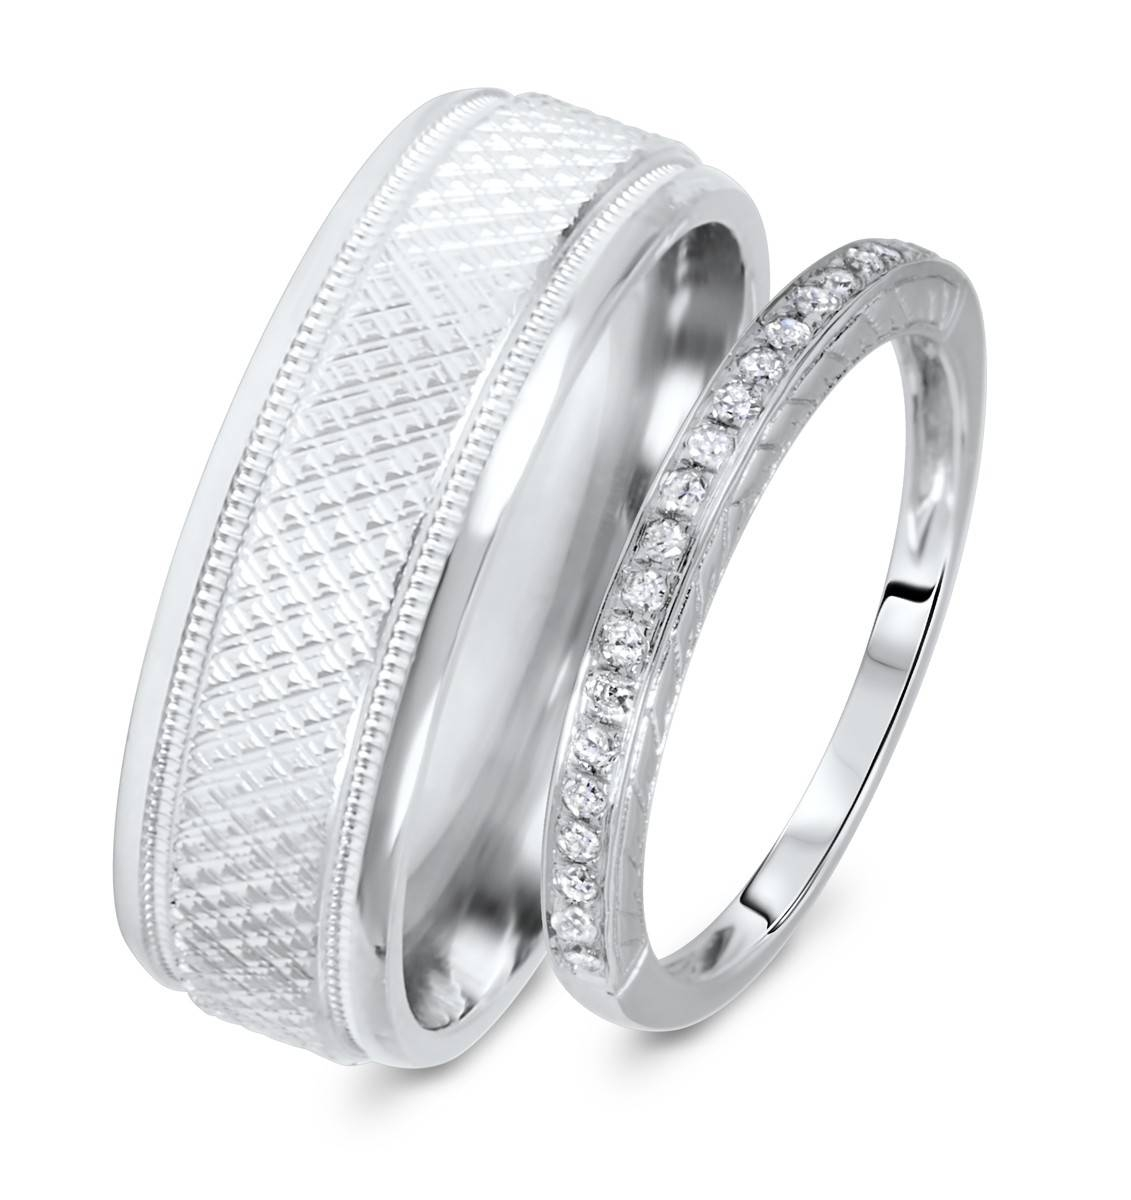 Cheap Wedding Bands: 15 Inspirations Of Cheap Wedding Bands Sets His And Hers